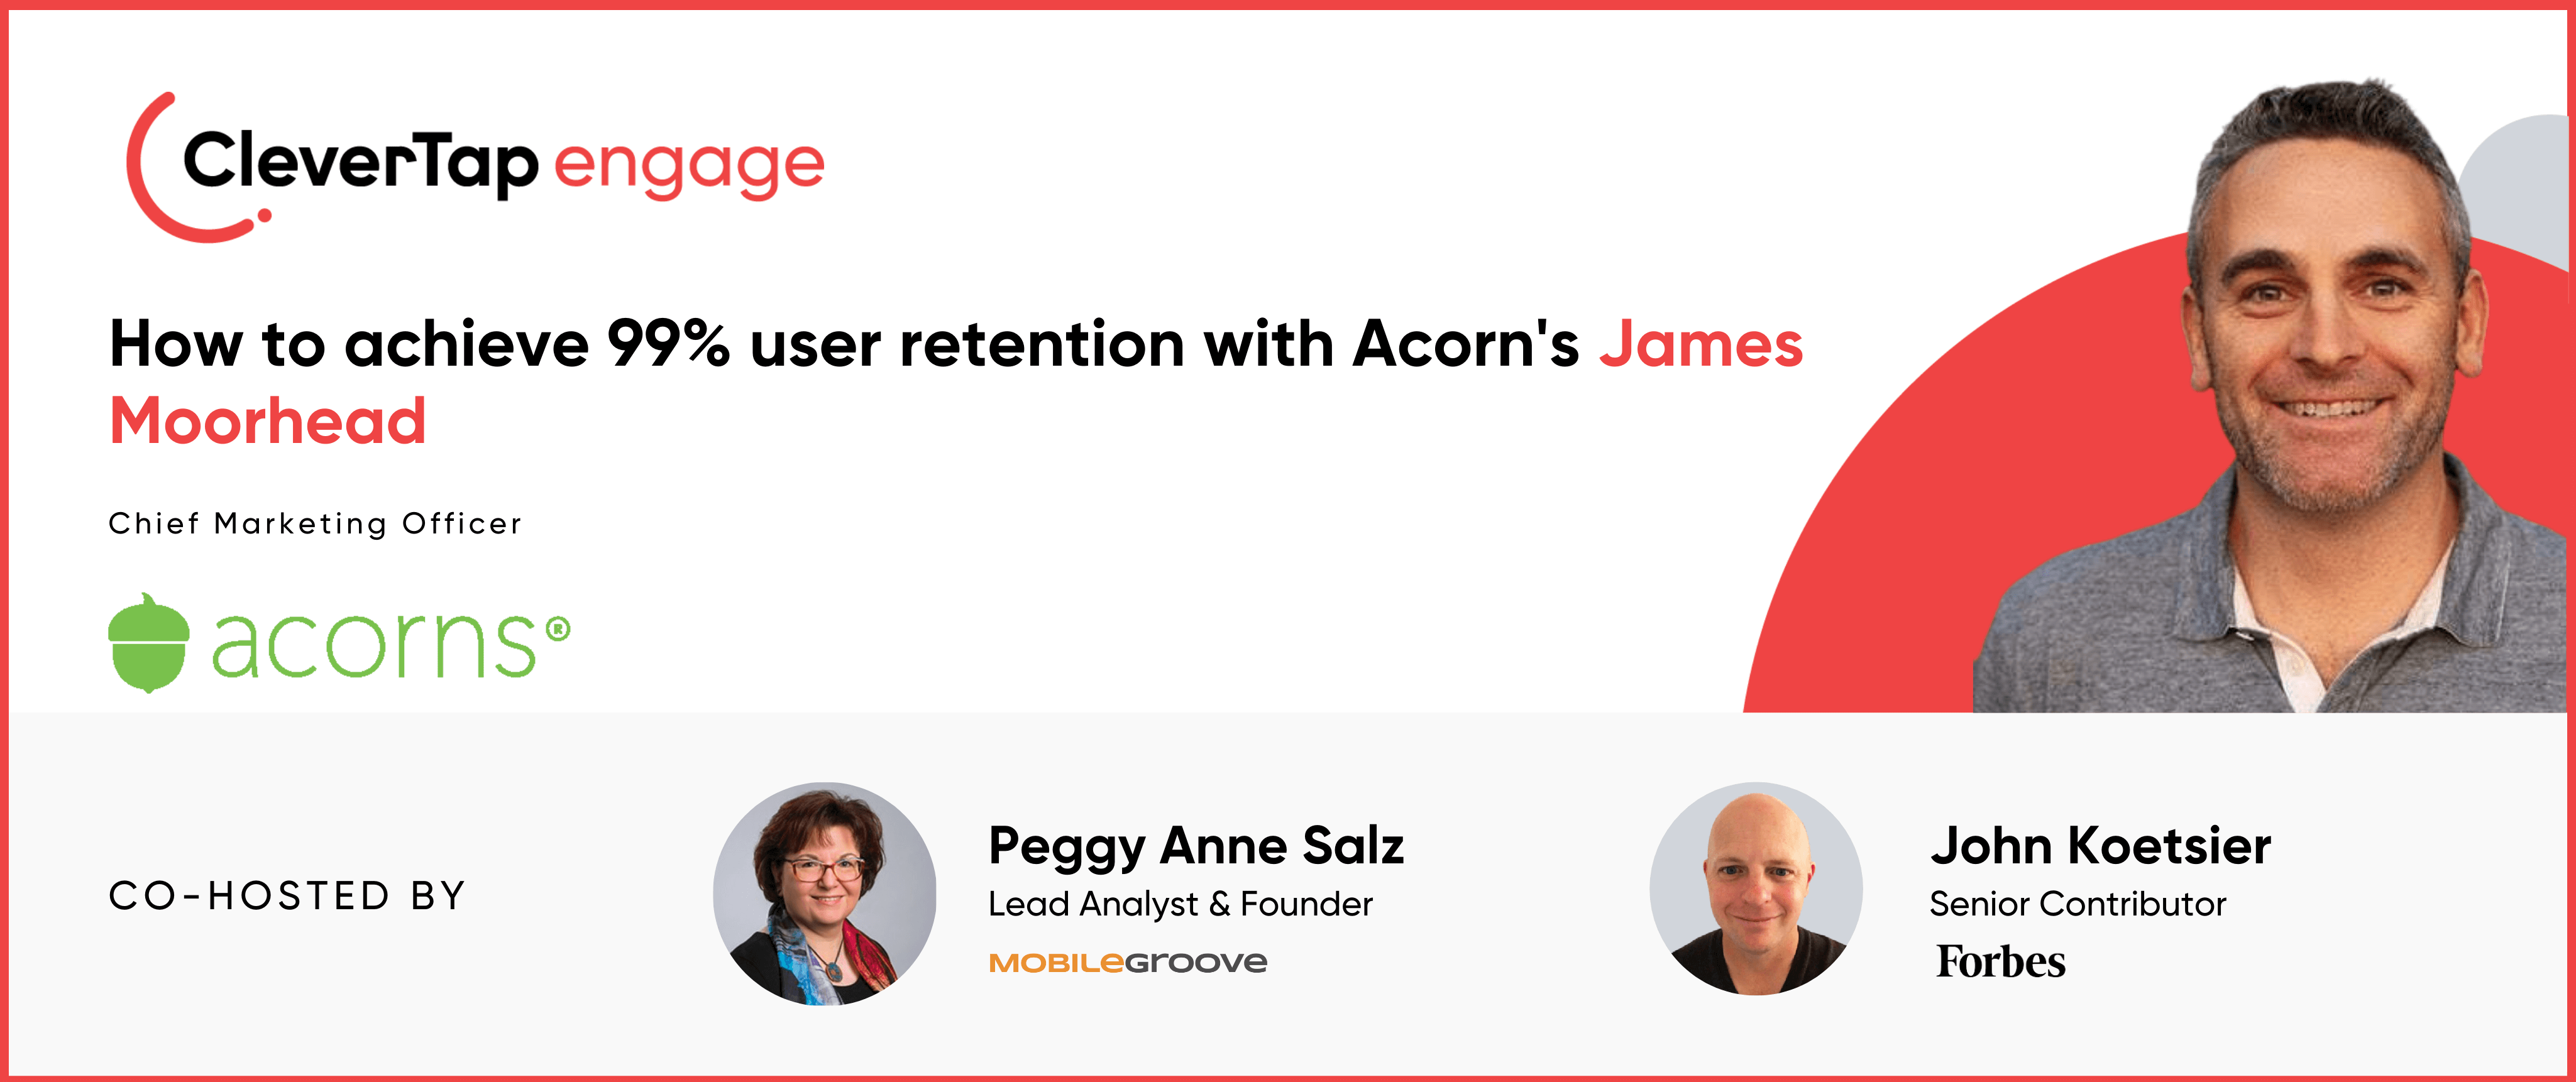 How Acorns' CMO James Moorhead Drives 99% Retention With Personalized Gamification and Customer Education